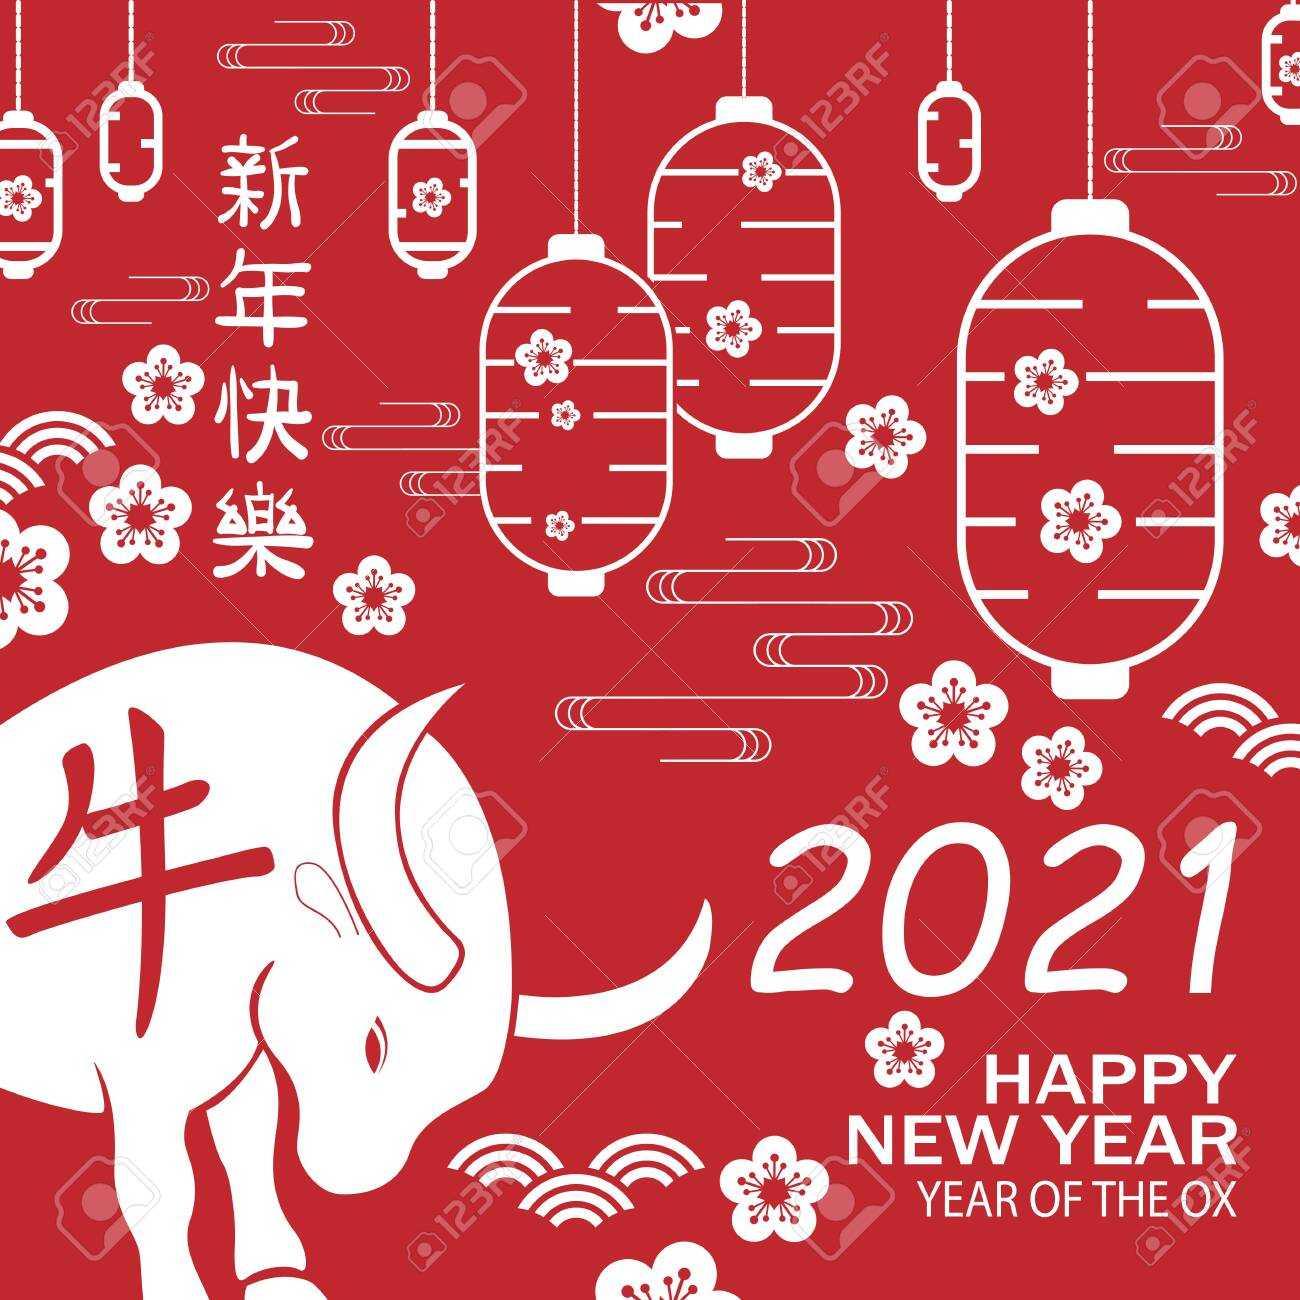 Chinese New Year 2021 Background Chinese Translation Happy Chinese Royalty Free Cliparts Vectors And Stock Illustration Image 137307630